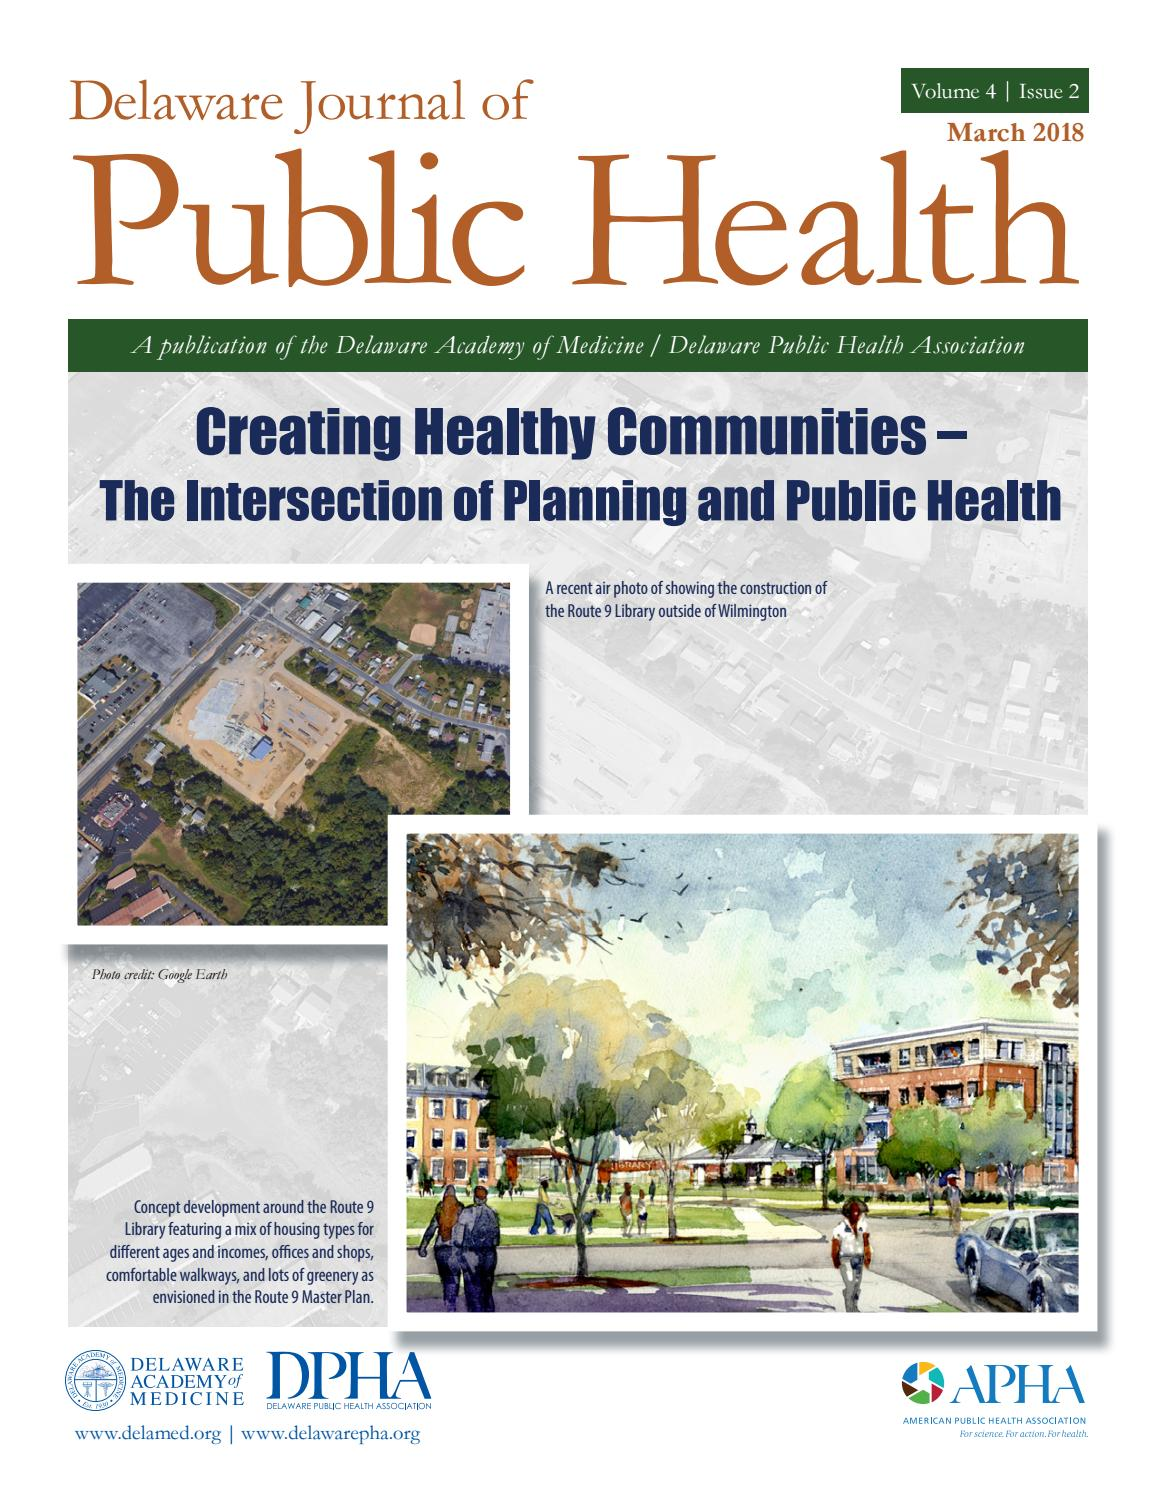 Delaware Journal of Public Health - Planning and Public Health by Delaware  Academy of Medicine and the Delaware Public Health Association - issuu 540ba7e03fa